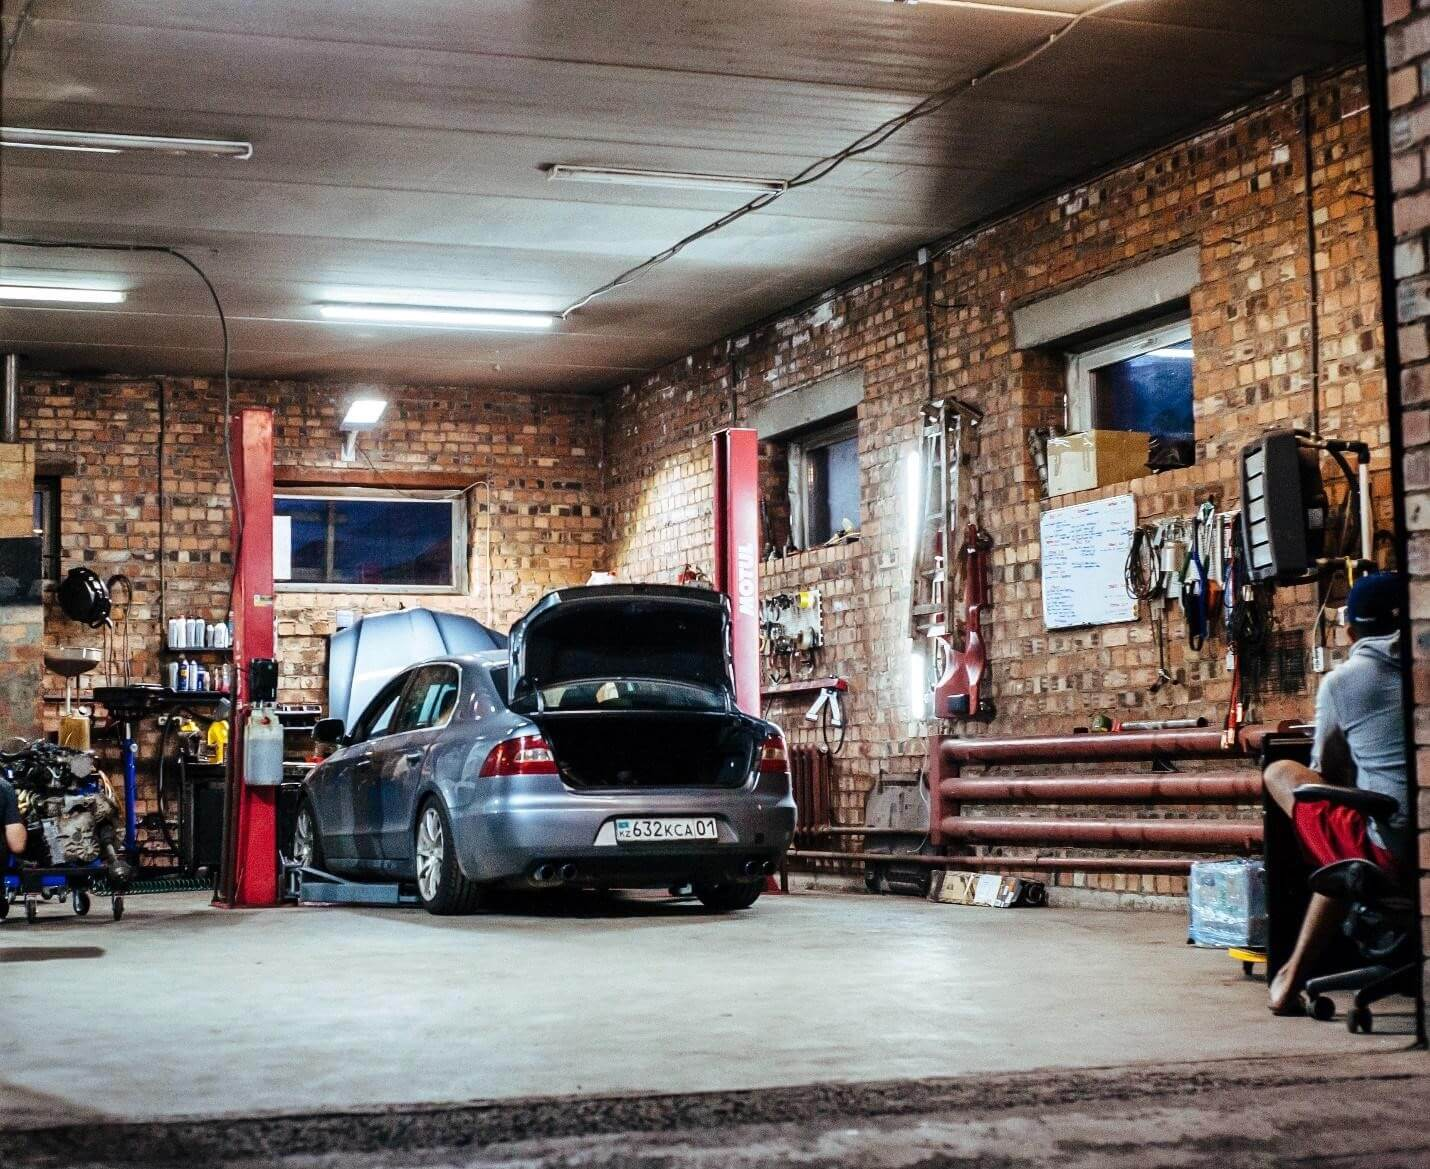 A garage interior with a man working on his car.